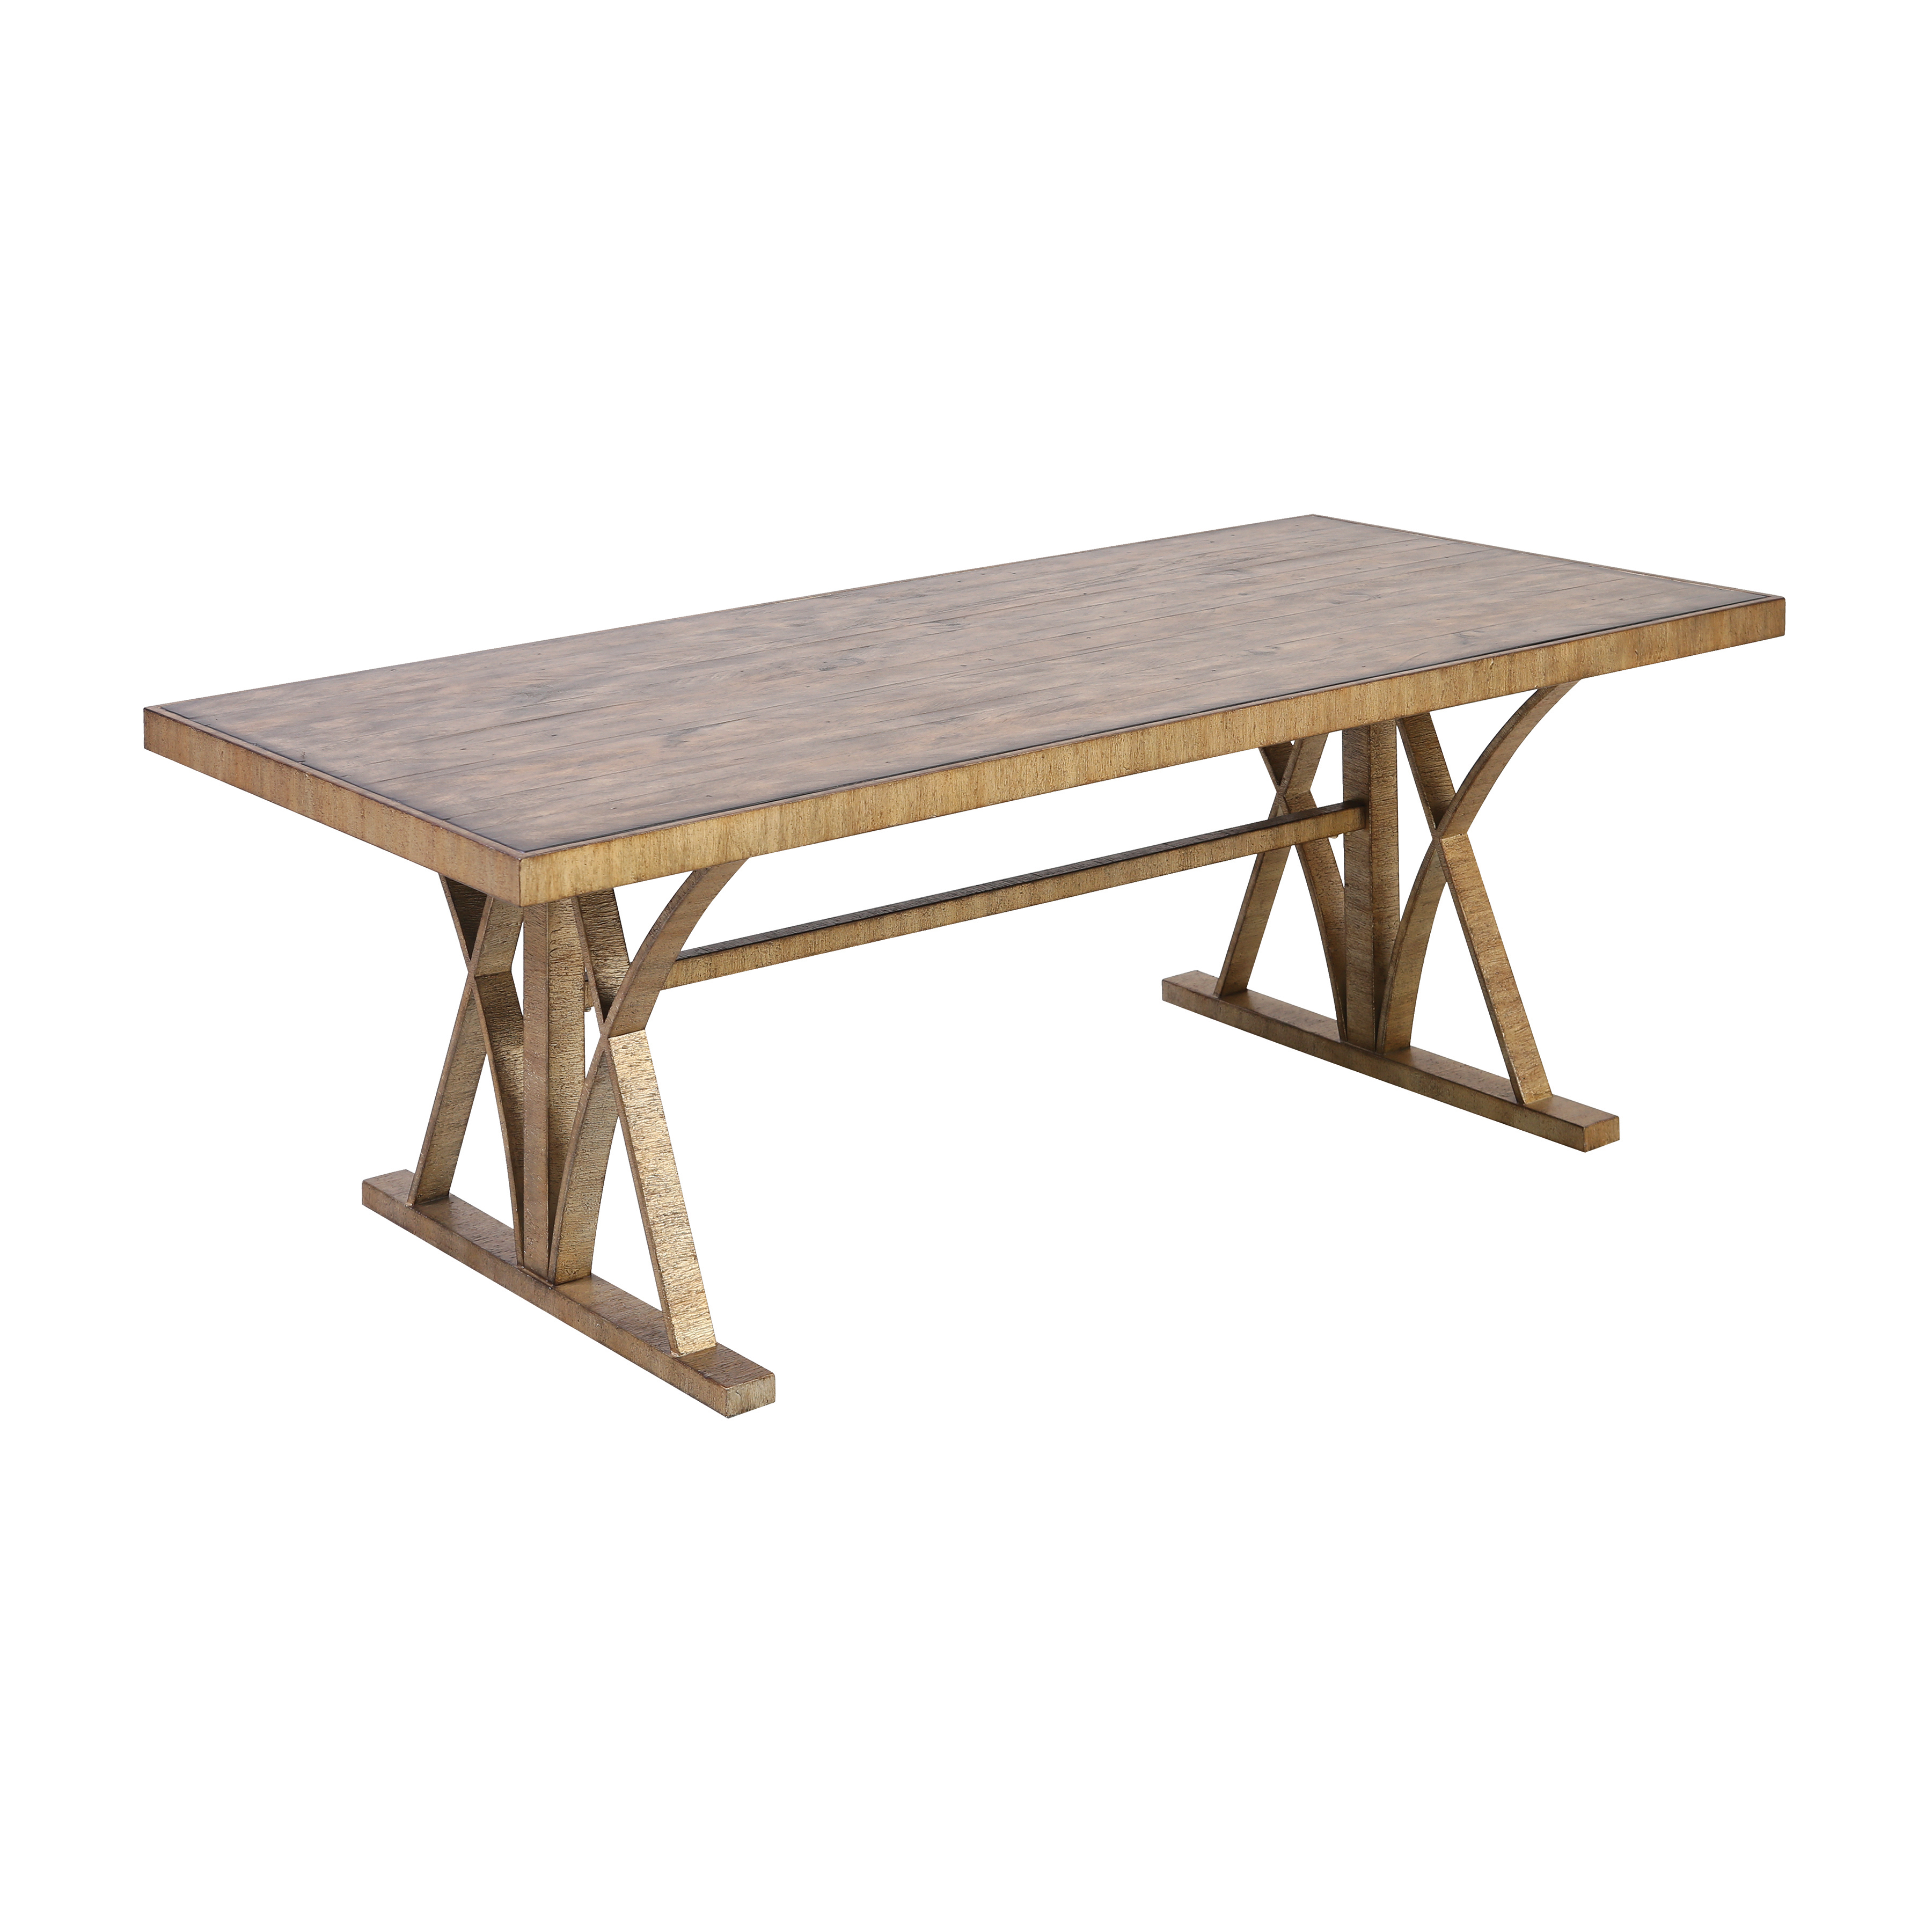 Better Ending Coffee Table in Bright Aged Gold and Brown Stained Solid Pine   Elk Home